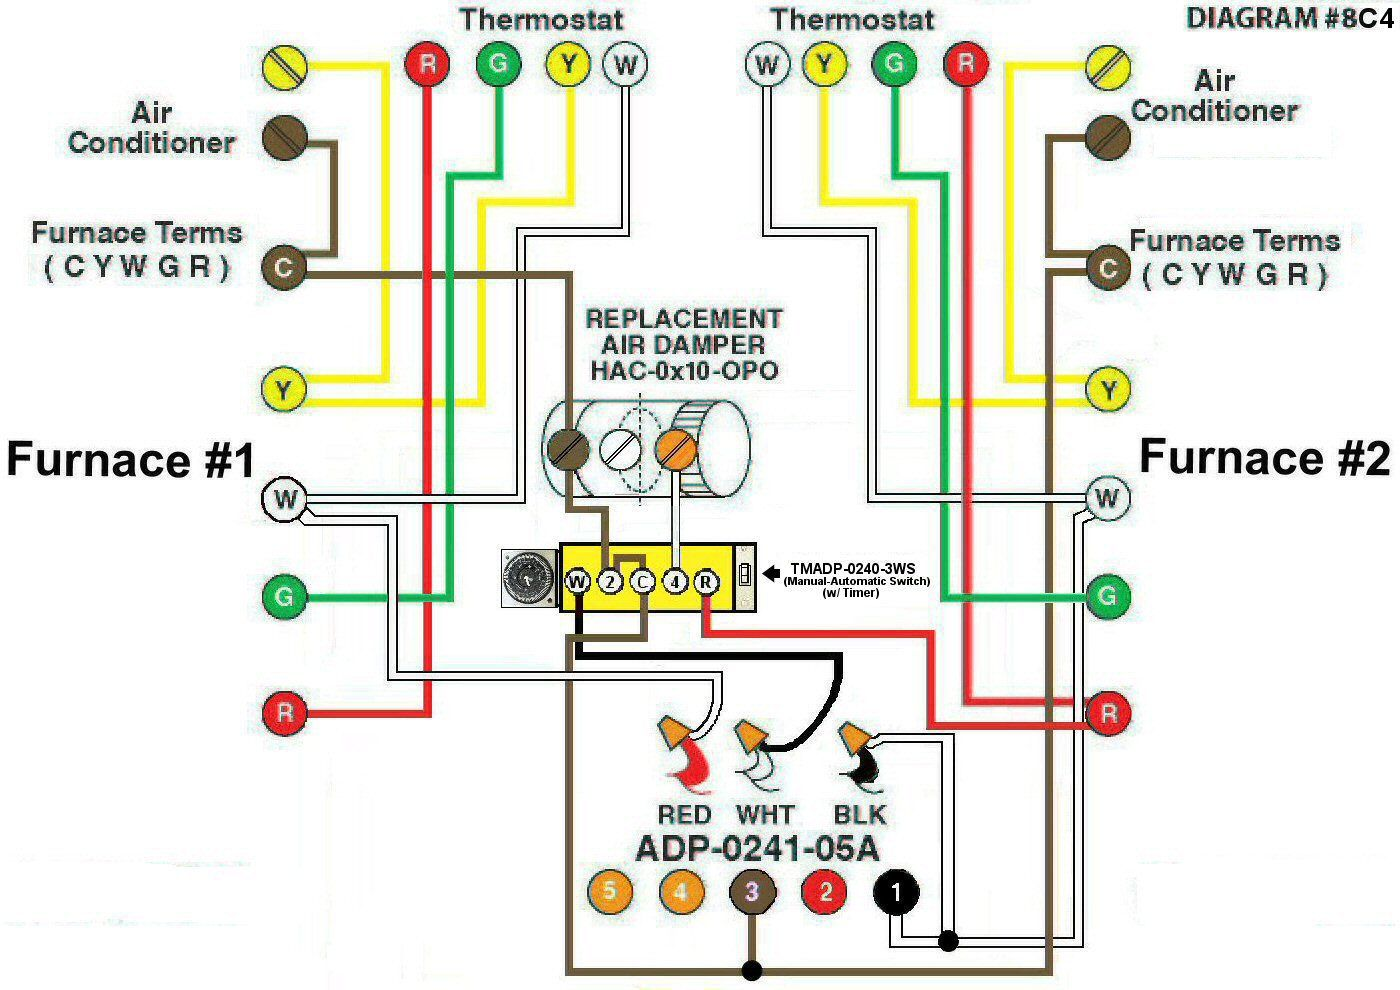 hight resolution of furnace blower wiring diagram me new heat pinterest wire and basic hvac blower wiring